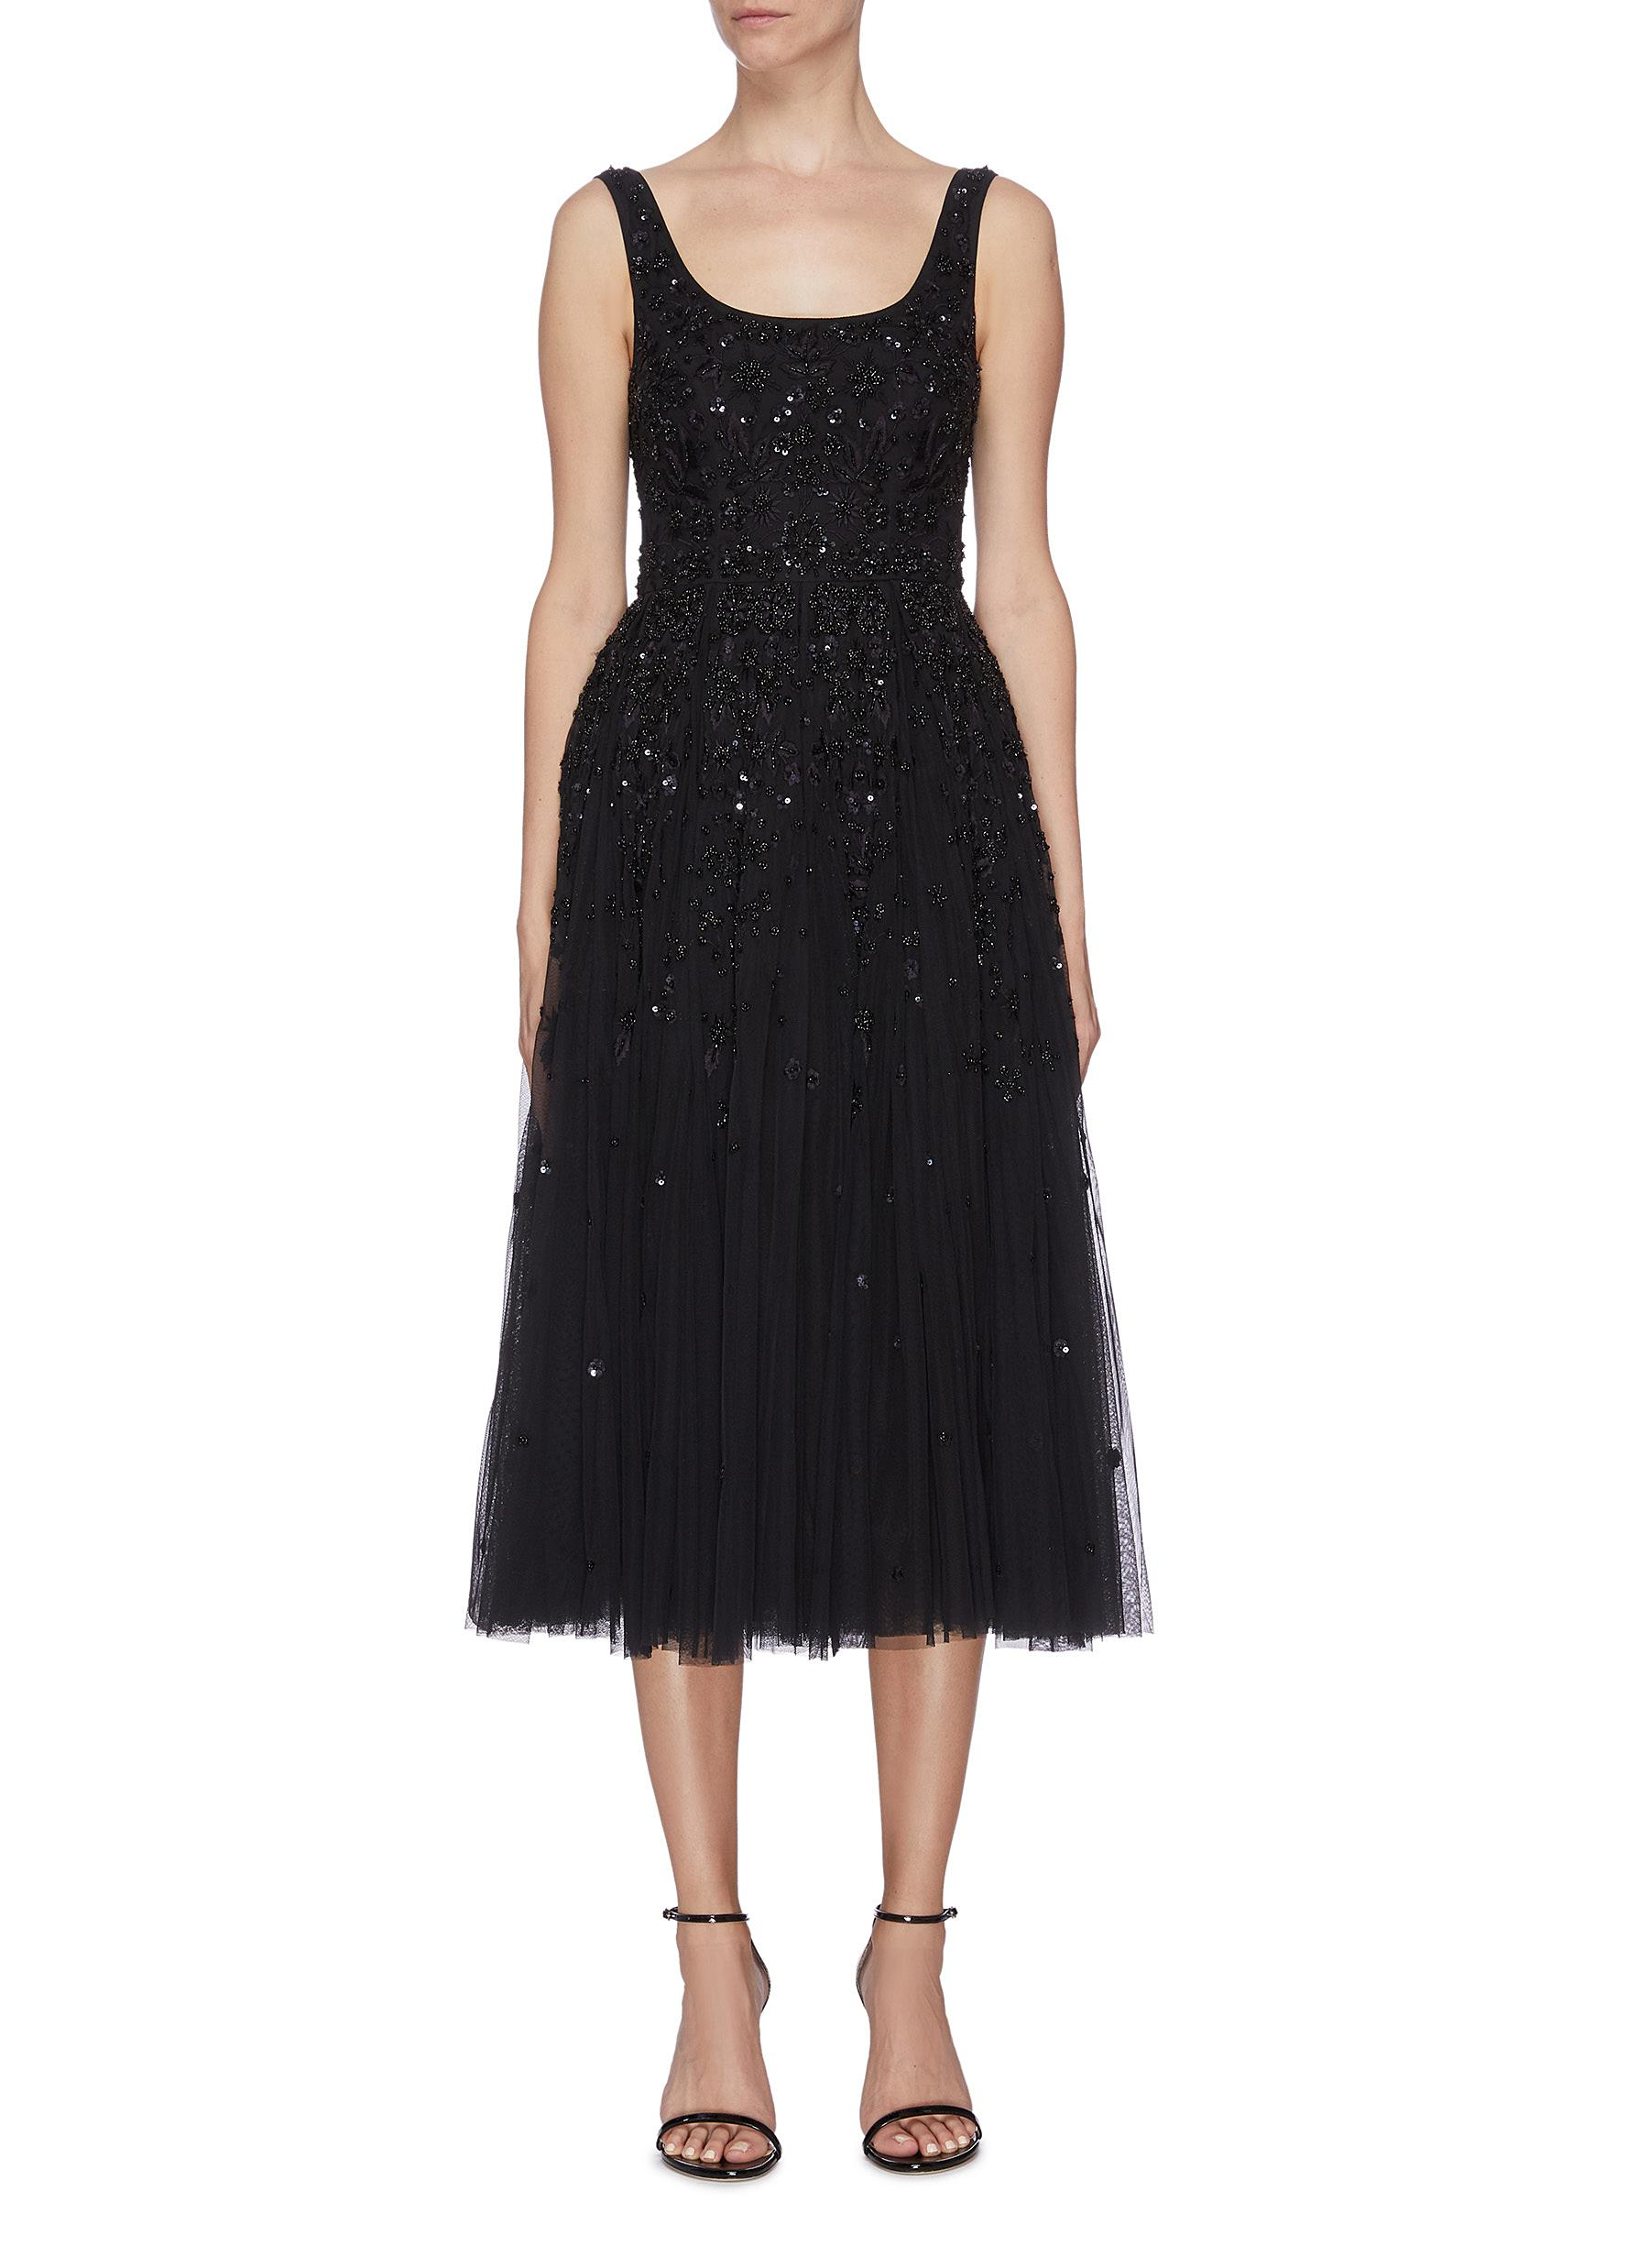 Buy Needle & Thread Dresses 'Snowflake' sequin embellished prom dress